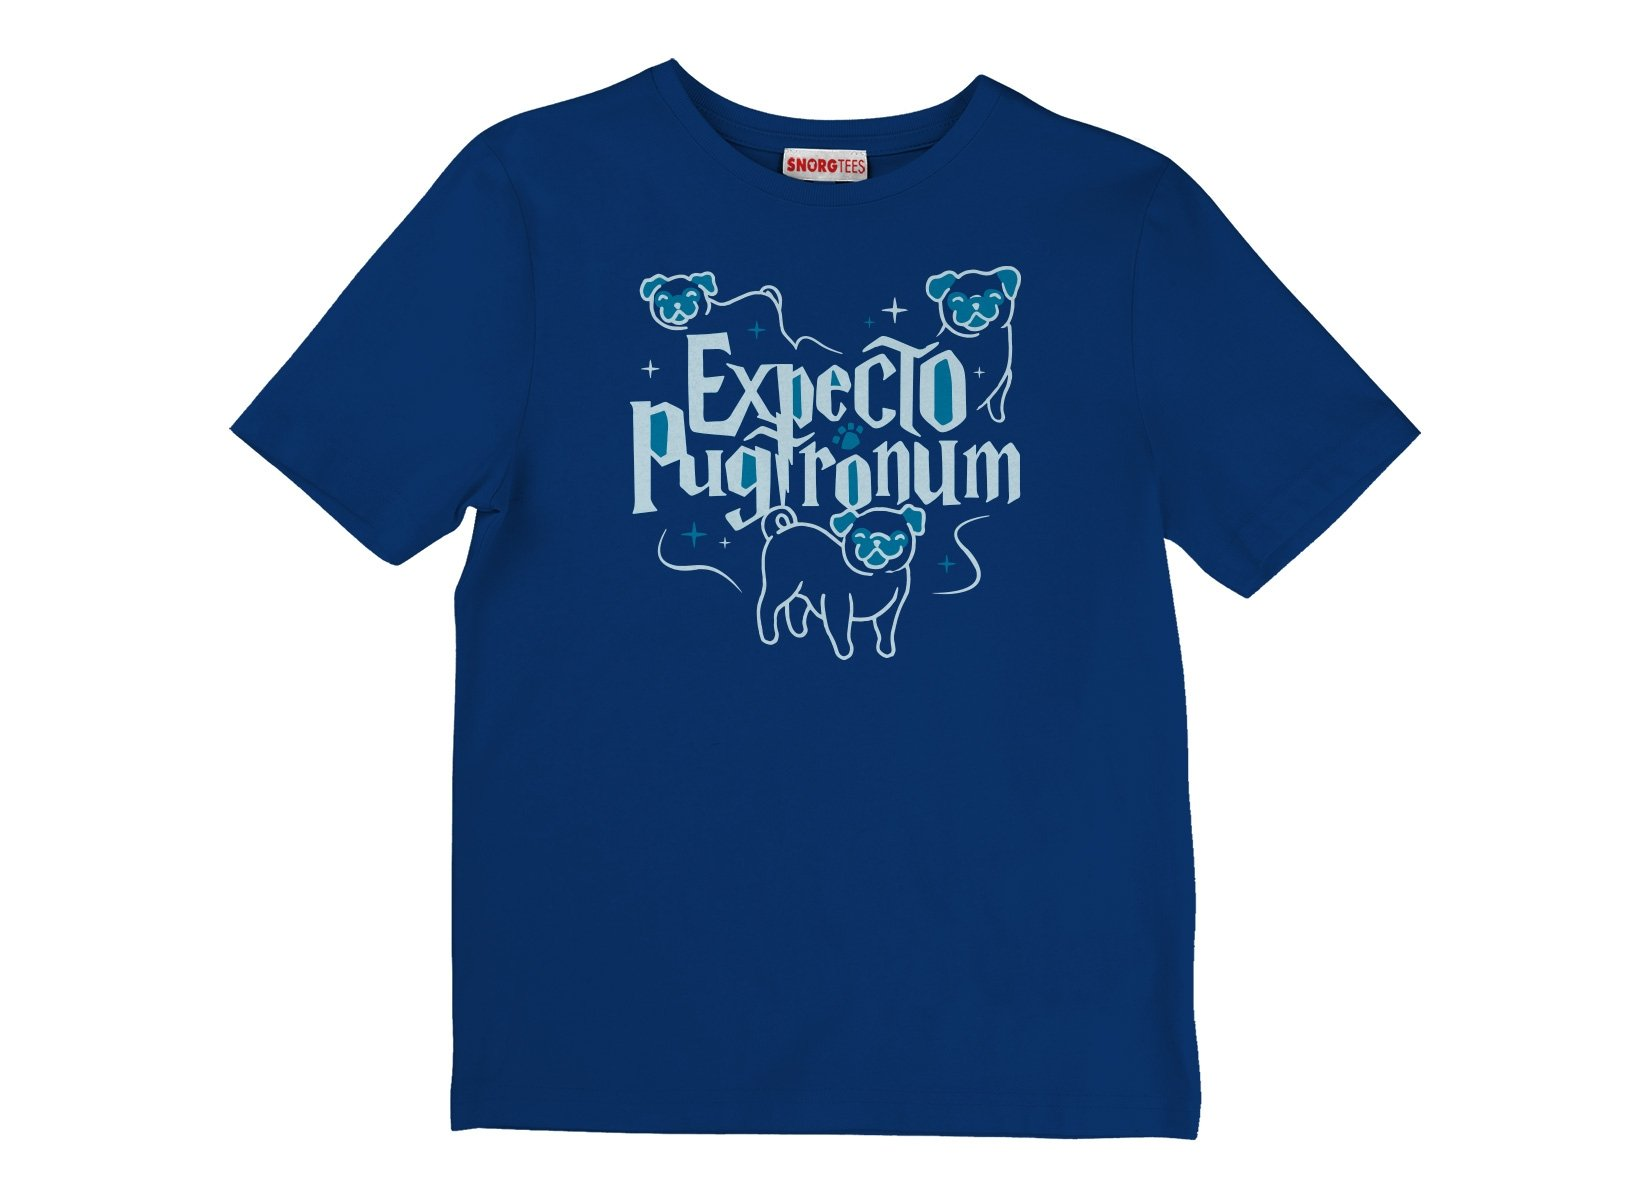 Expecto Pugtronum on Kids T-Shirt